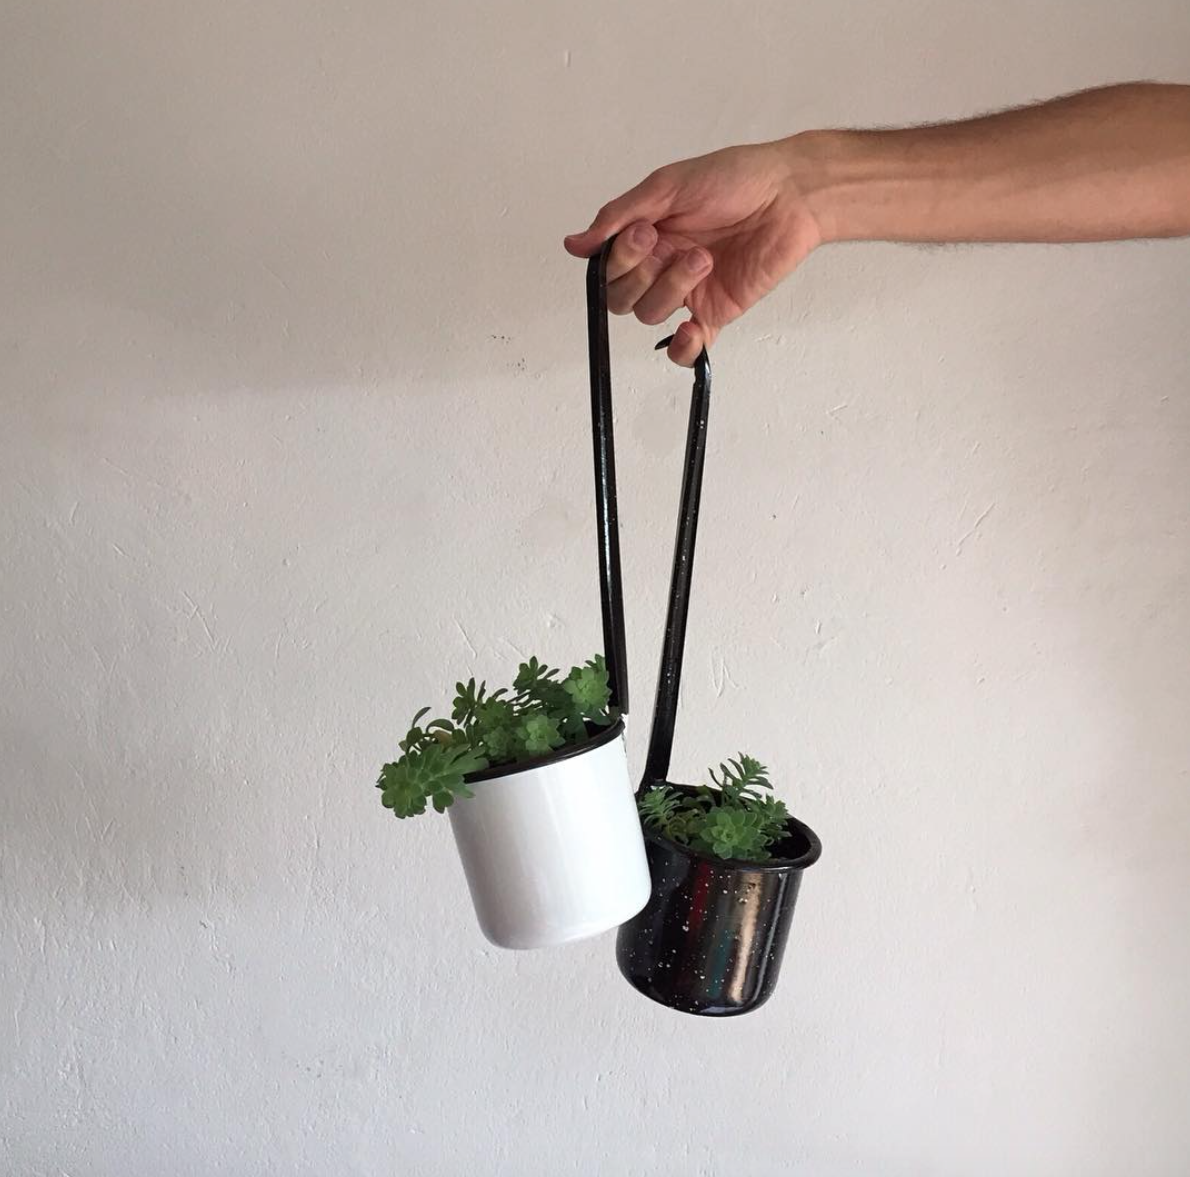 Criolla Cucharones with Plants on Remodelista